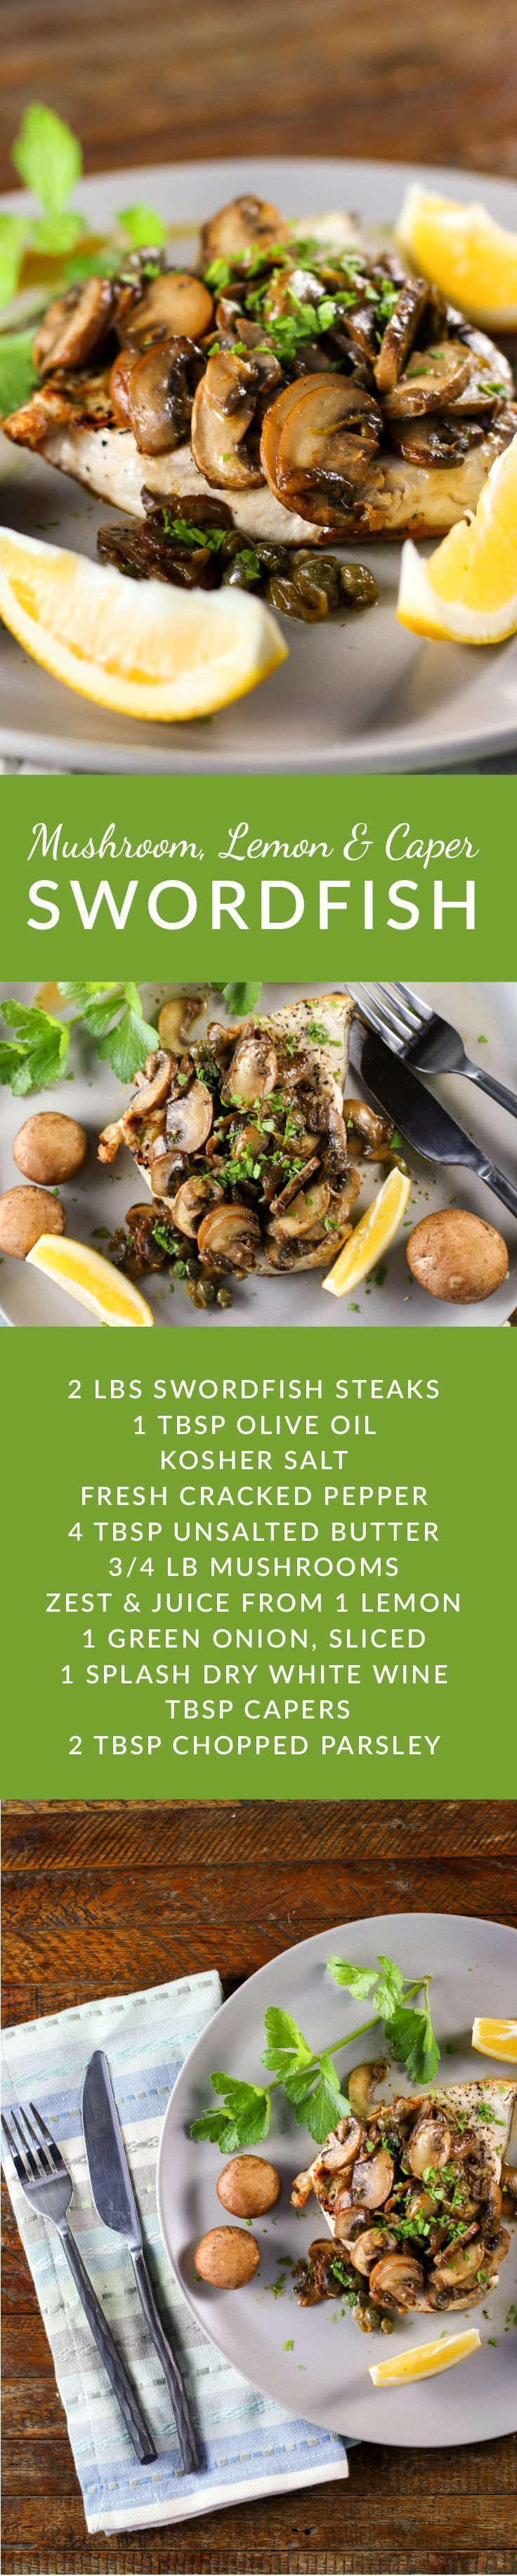 Delicious, fast and easy, this easy swordfish recipe is suitable for company or a quick weeknight meal.